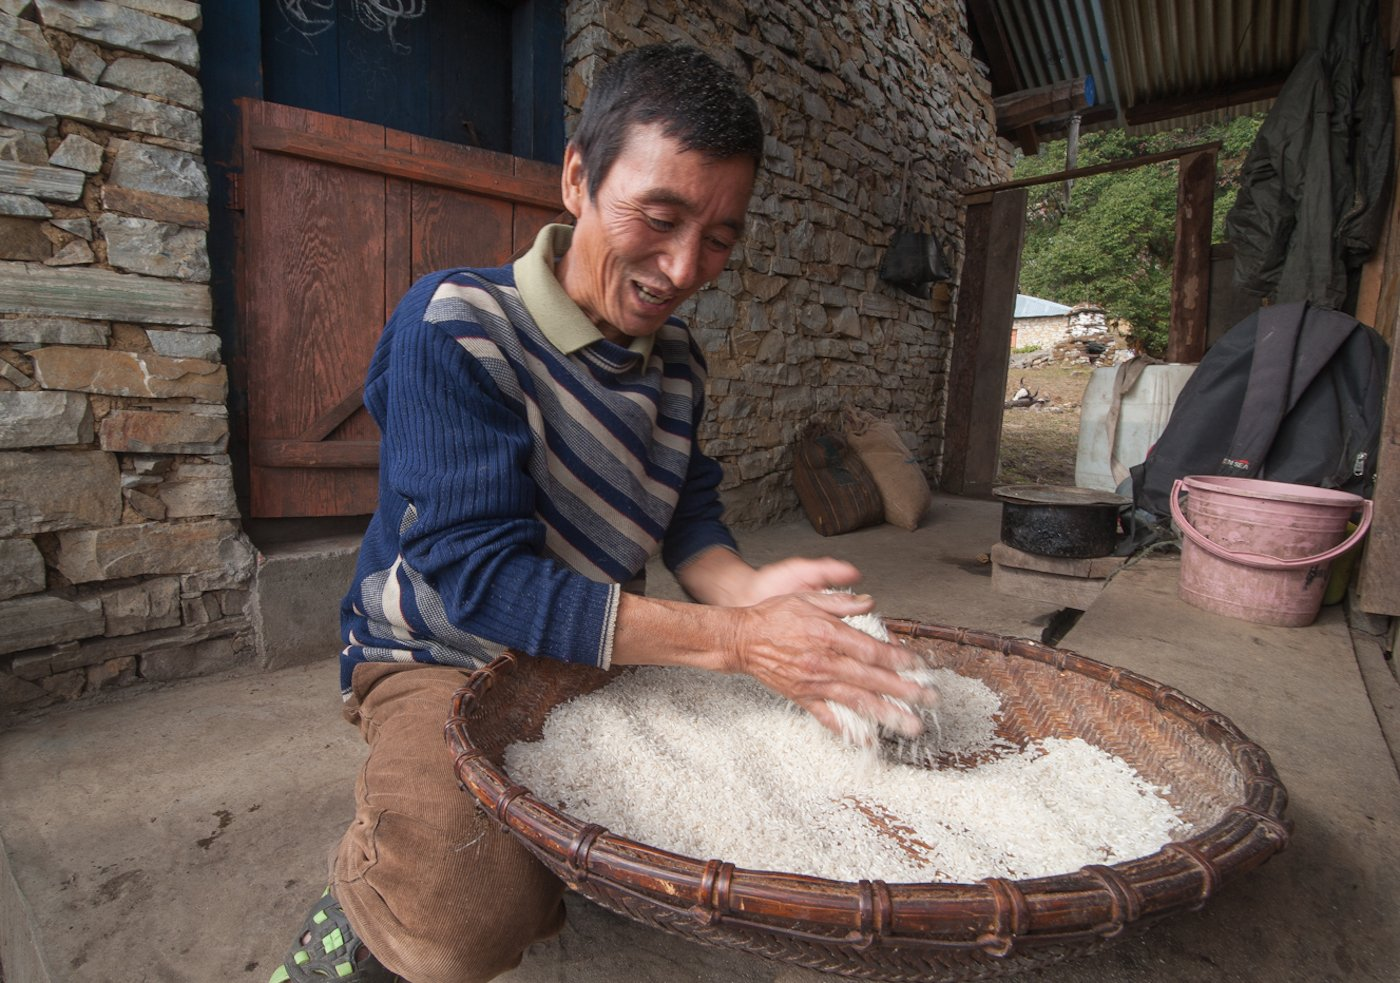 The Brokpa mostly eat rice (bought from markets at lower altitudes) and yak meat. They eat only a few vegetables like potatoes because the land here is not fertile enough to cultivate vegetables. Credit: Ritayan Mukherjee